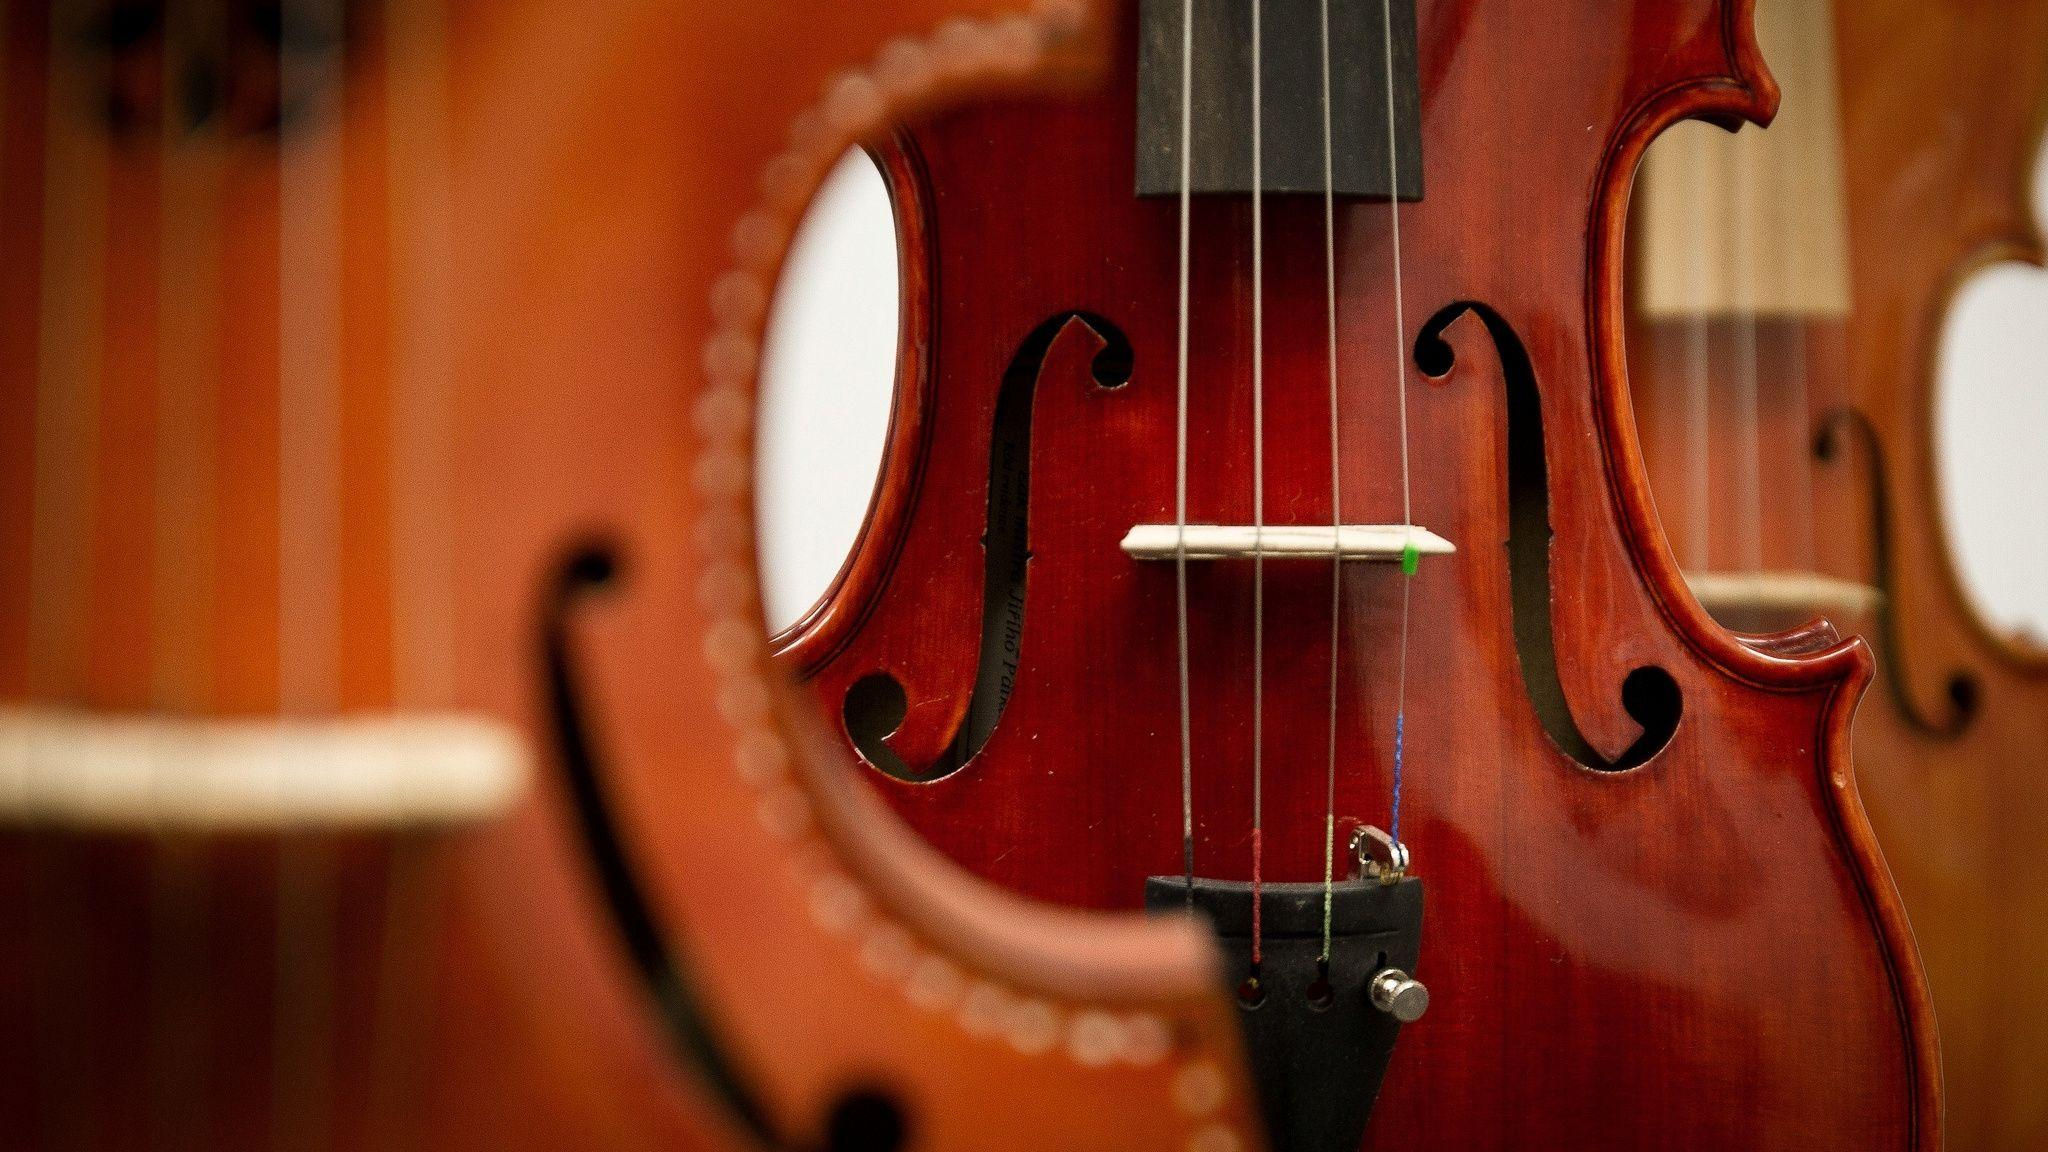 Download 2048x1152 Image Bowed String Instrument, Bass Violin